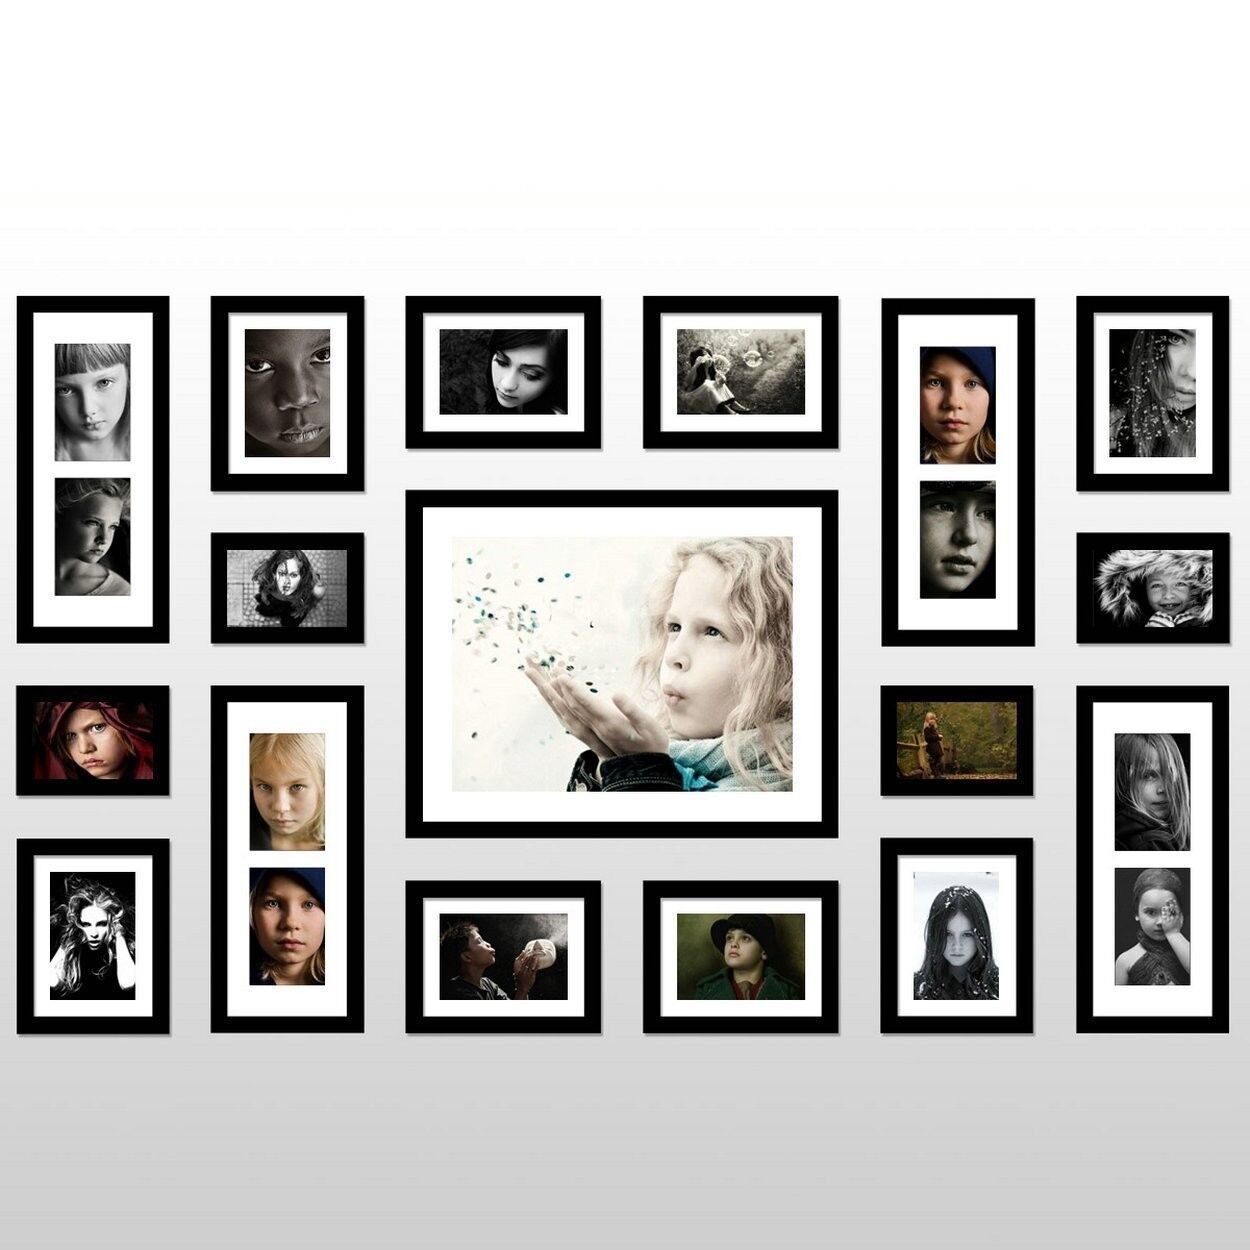 Modern Wall Frame Decor : Family wall frame set hot girls wallpaper